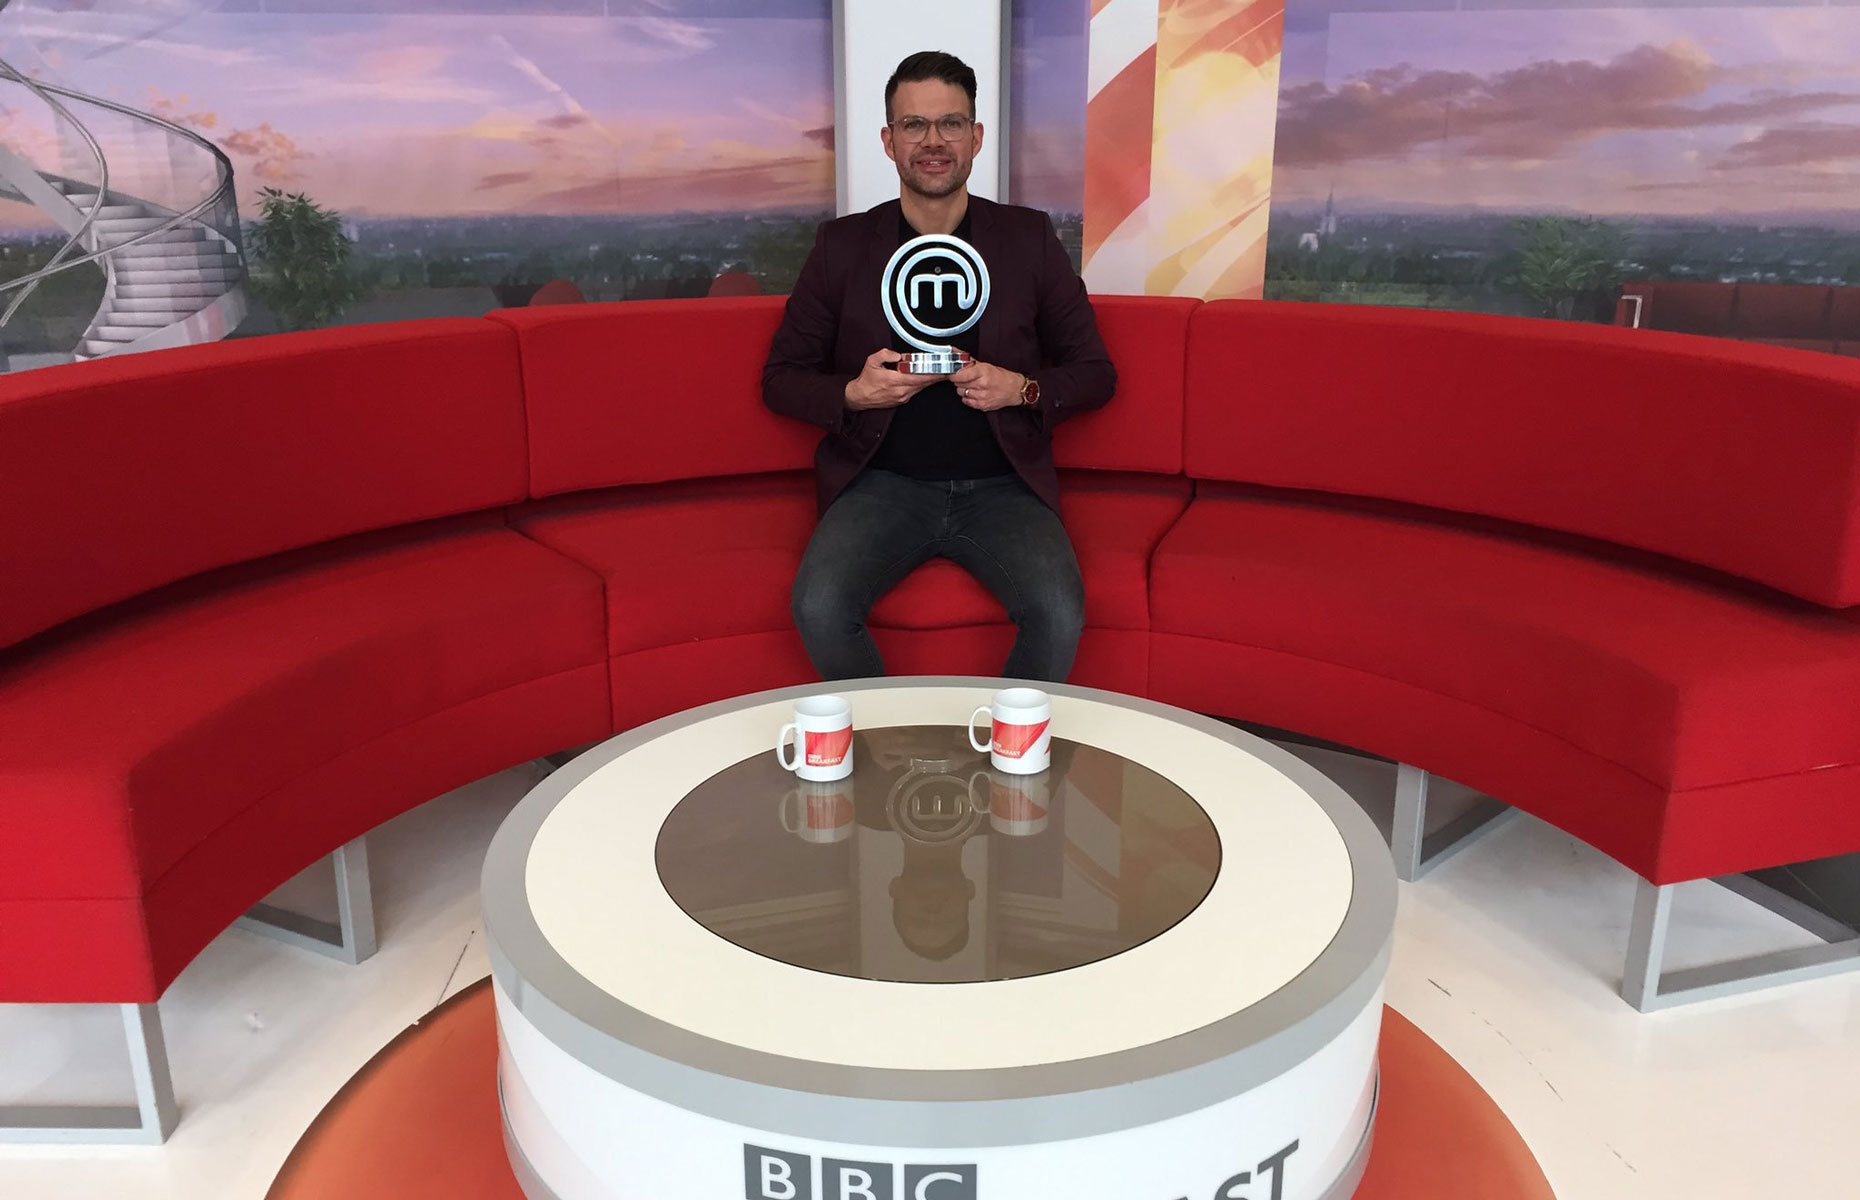 Kenny Tutt previous MasterChef winner from 2018 pictured on BBC Breakfast with his winner's trophy (Image: Kenny Tutt/Twitter)